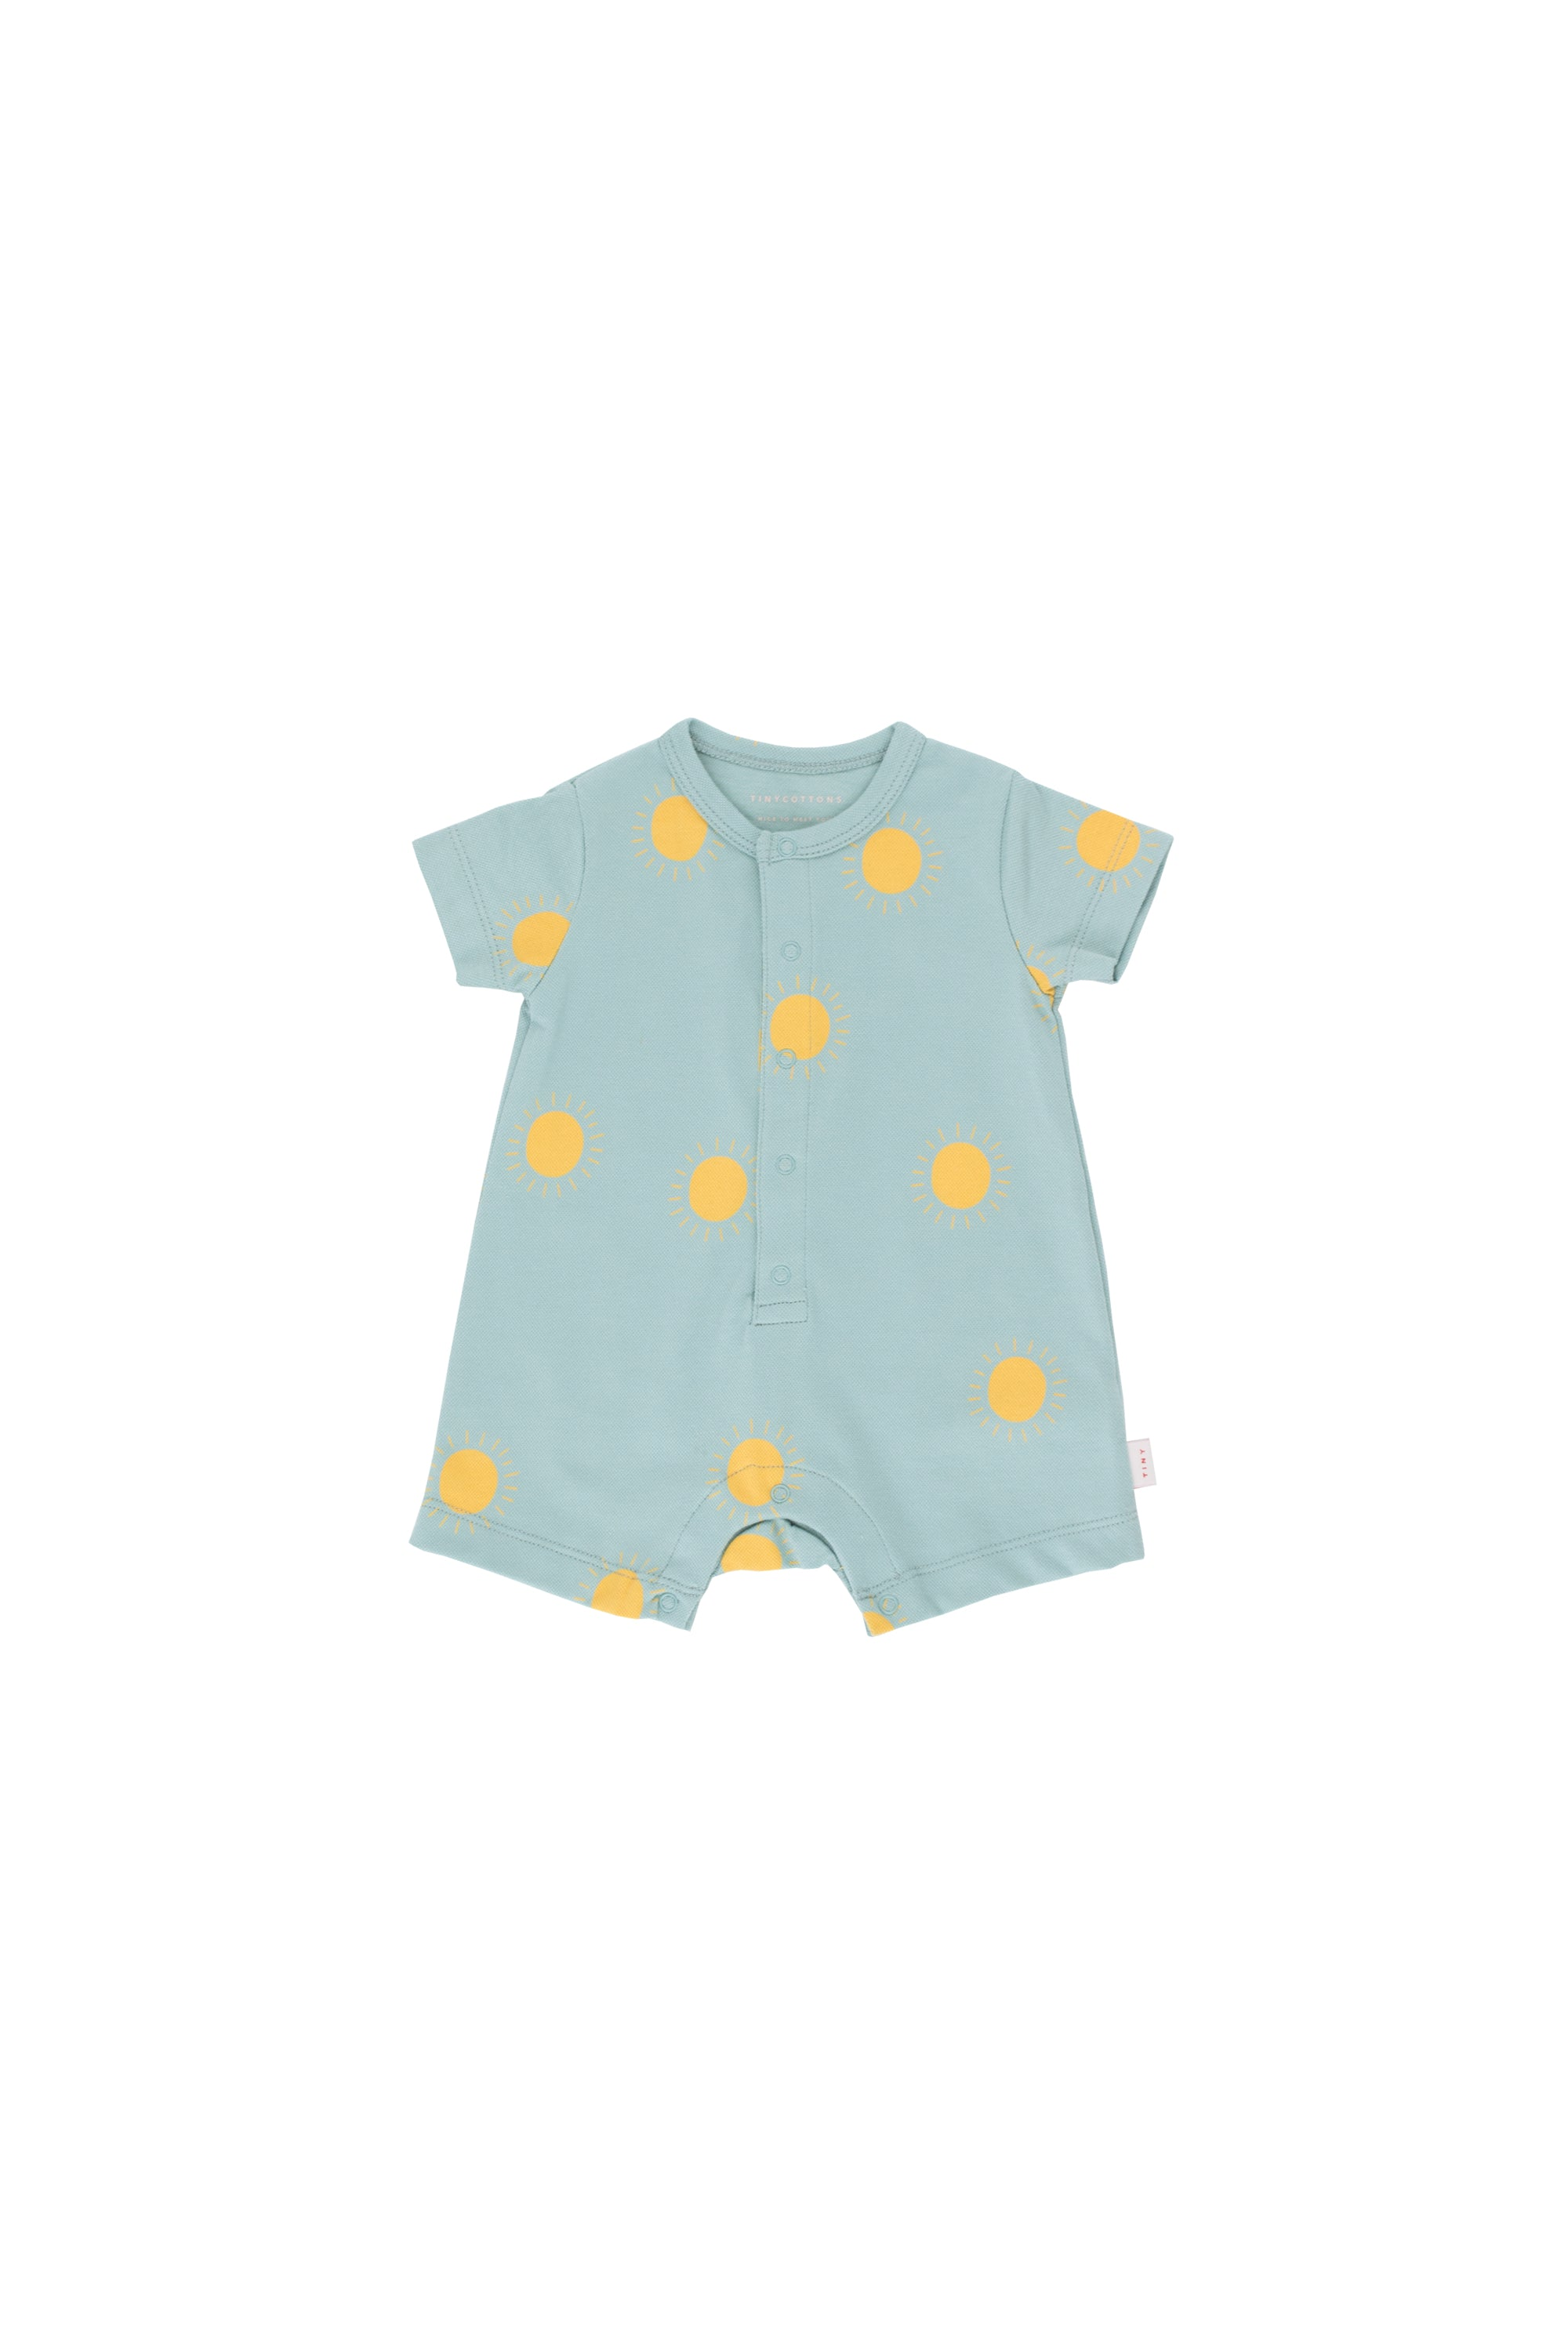 Tiny Cottons Sun One Piece - Sea Green/Yellow